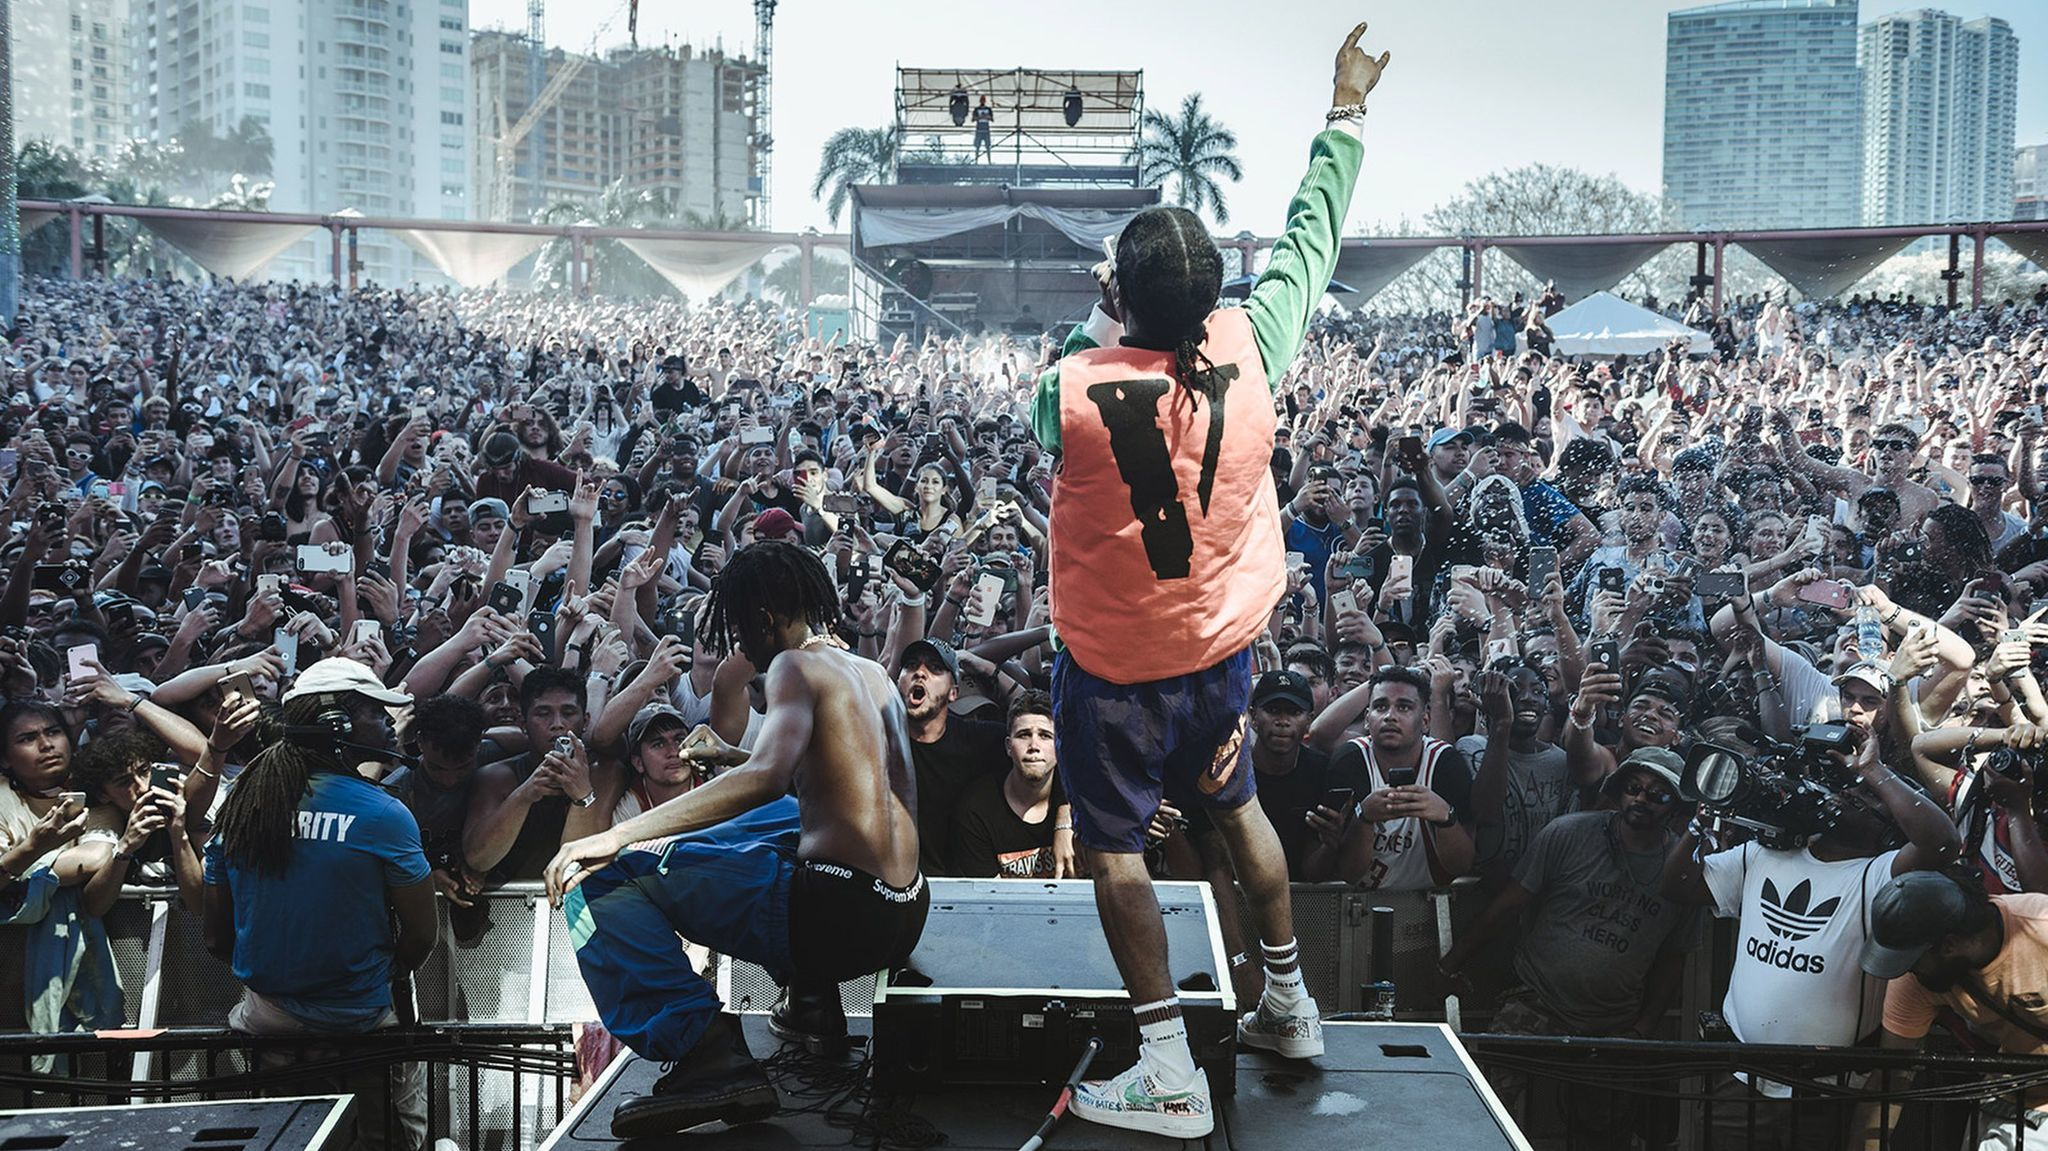 Rolling Loud and the new look of the hip-hop festival: The Playboi Carti and A$AP Rocky in performance at Rolling Loud, Miami, 2017. (Aaron Ricketts / Rolling Loud)